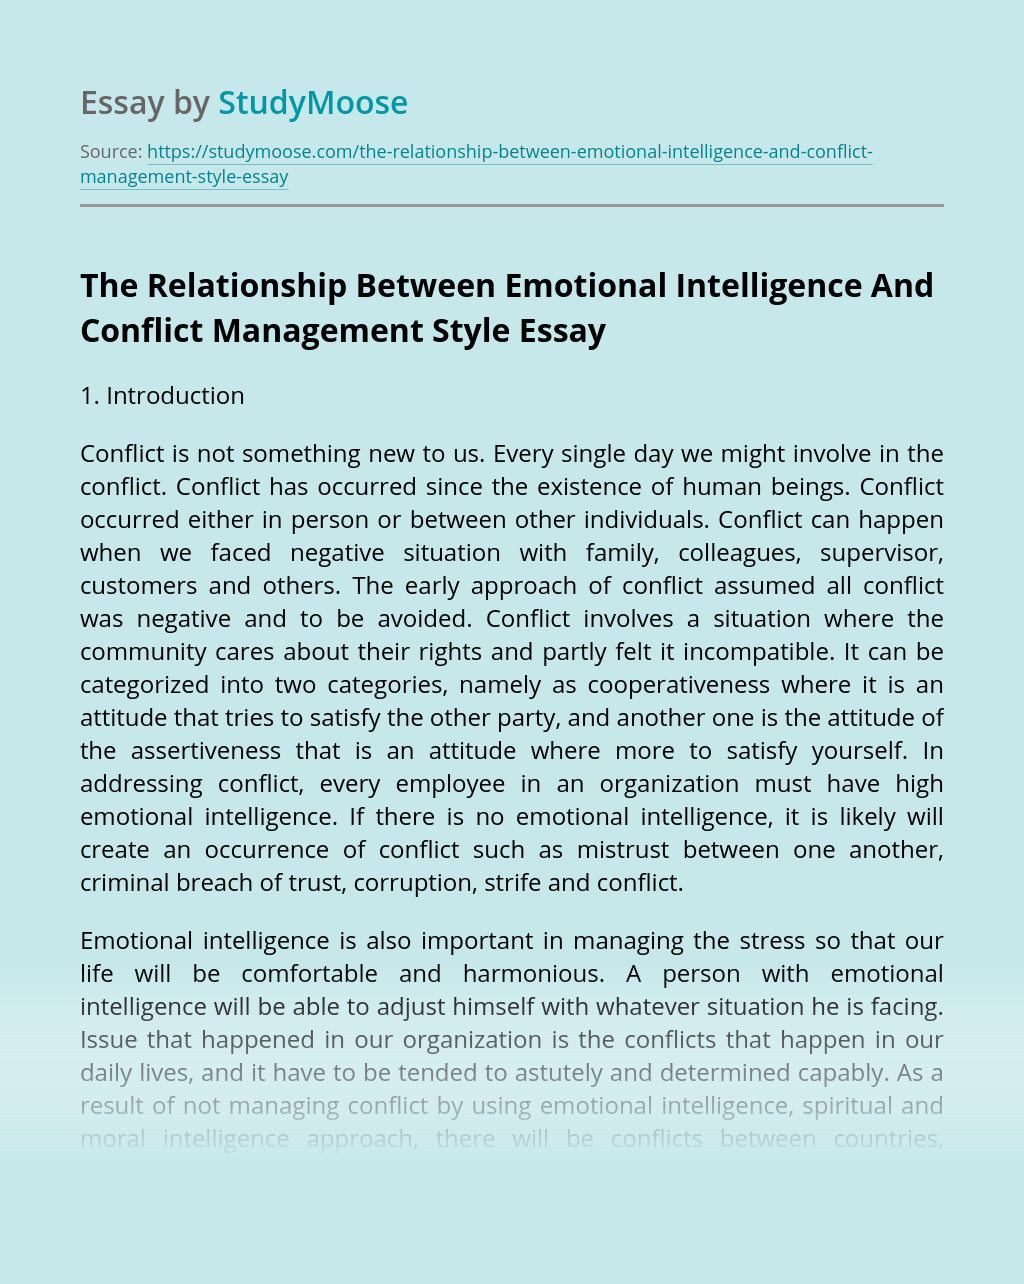 The Relationship Between Emotional Intelligence And Conflict Management Style